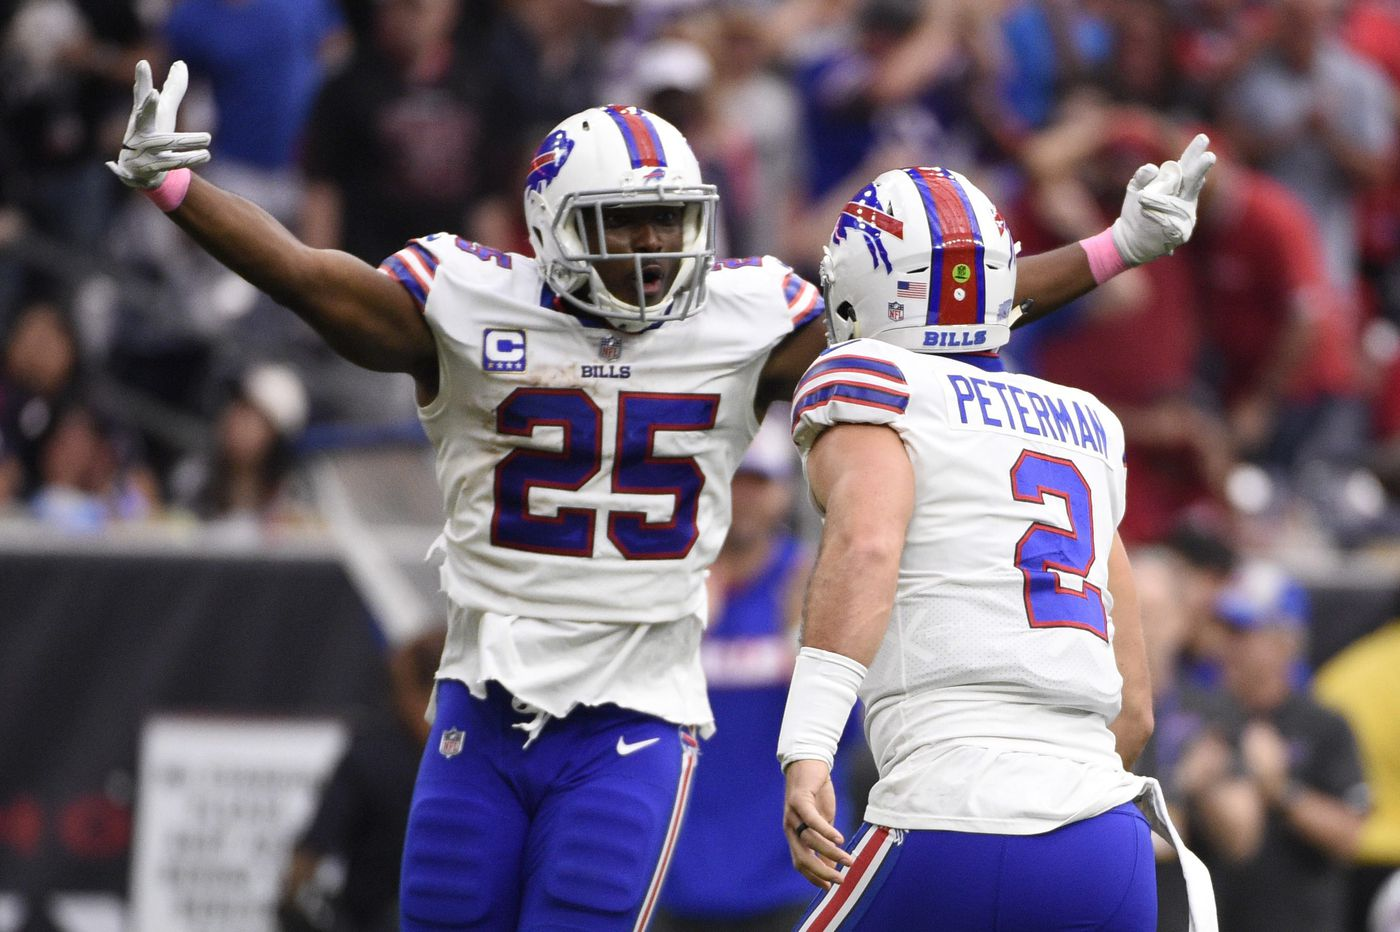 Report: Don't expect to see LeSean McCoy back on the Eagles yet